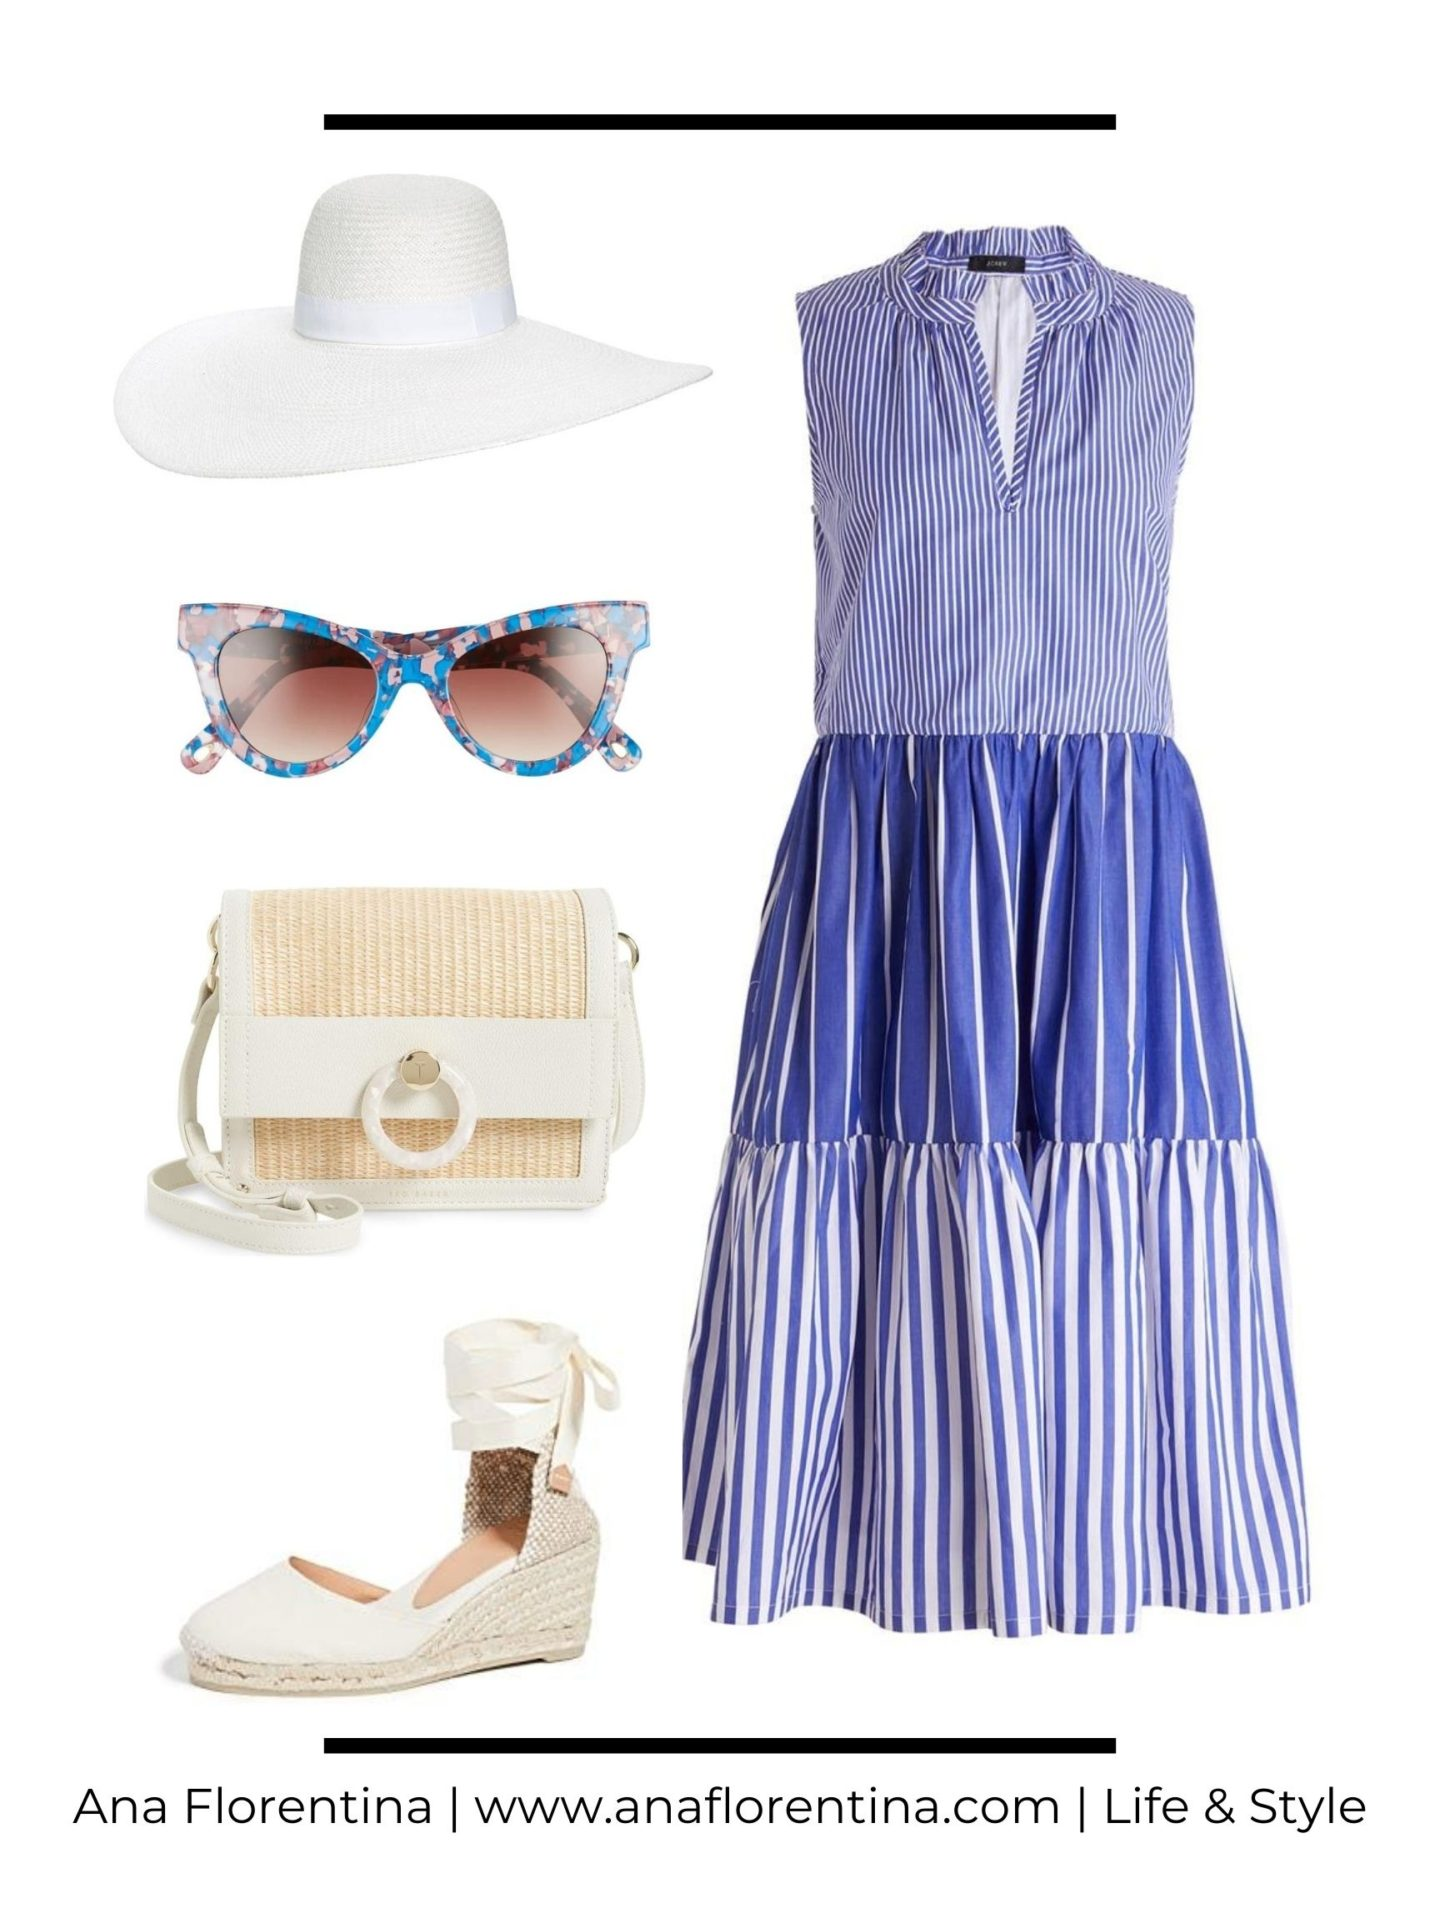 shop-the-look-blue-striped-dress-white-straw-hat